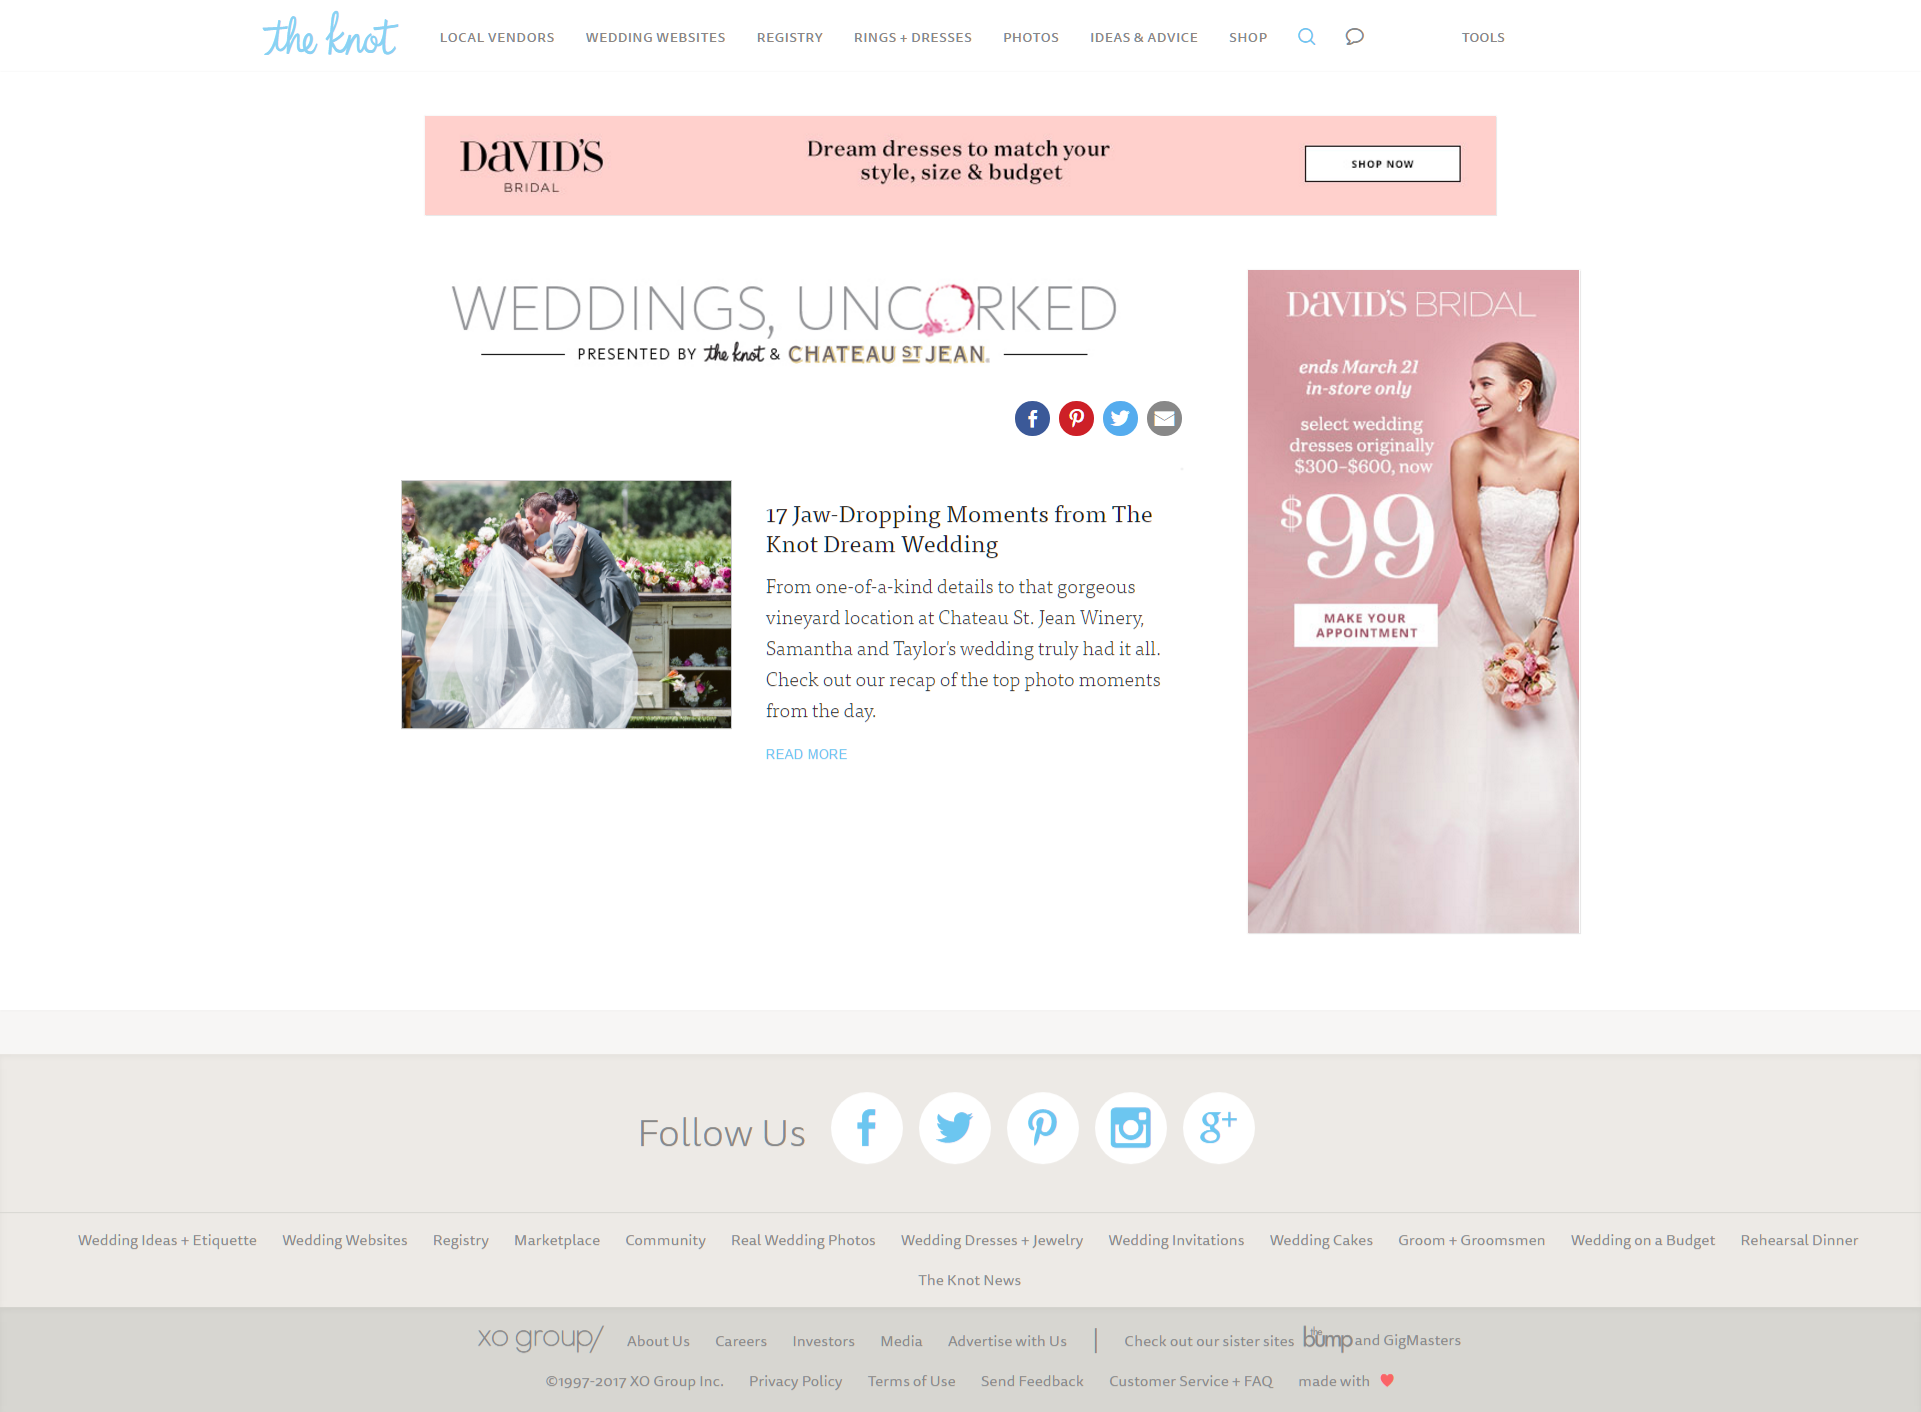 Chateau St. Jean's Weddings Uncorked- Content Hub